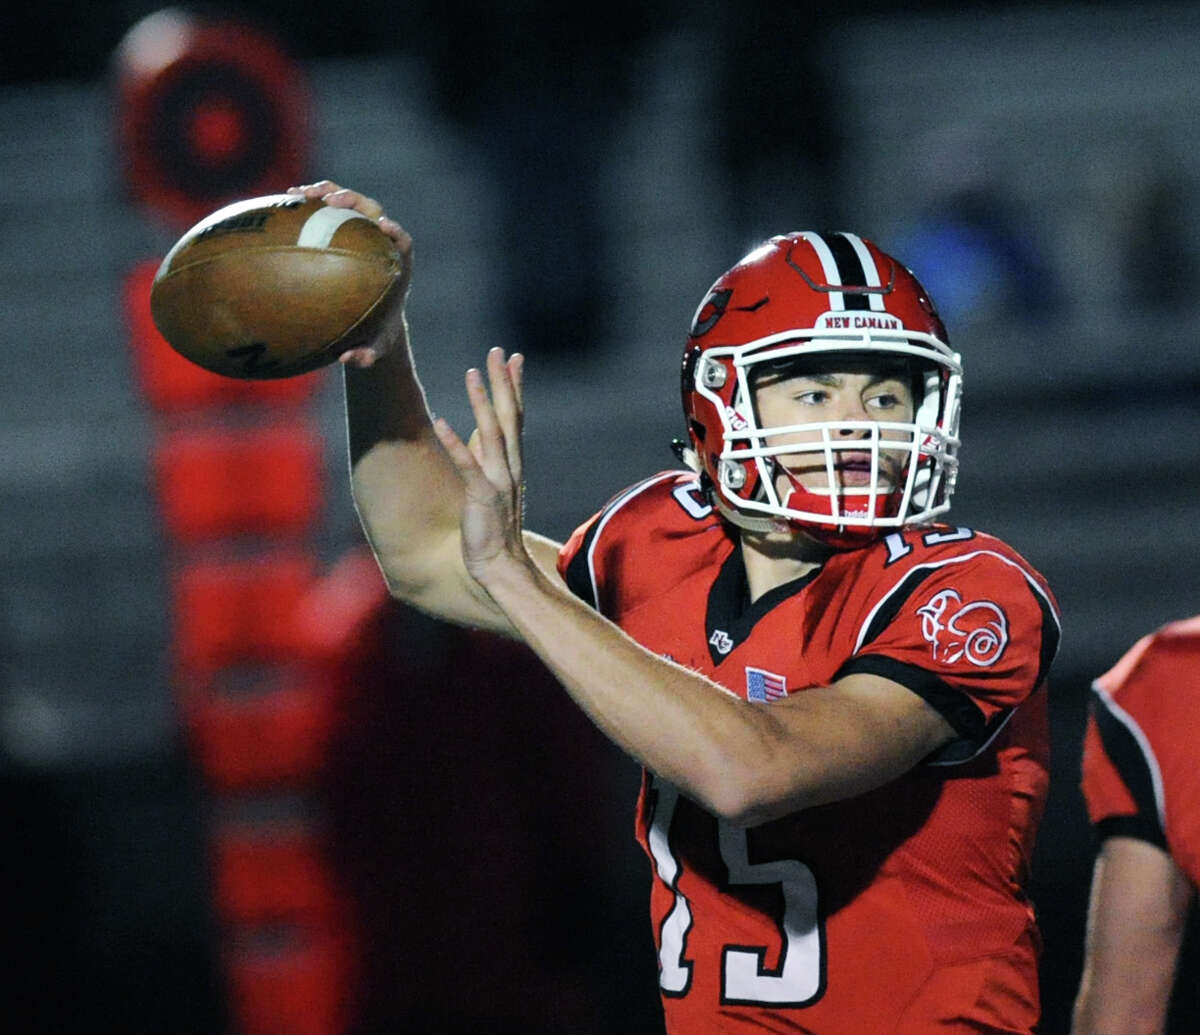 New Canaan quarterback Michael Collins (#15) during the high school football game between New Canaan High School and Fairfield Ludlowe High School at New Canaan, Conn., Friday night, Nov. 13, 2015.